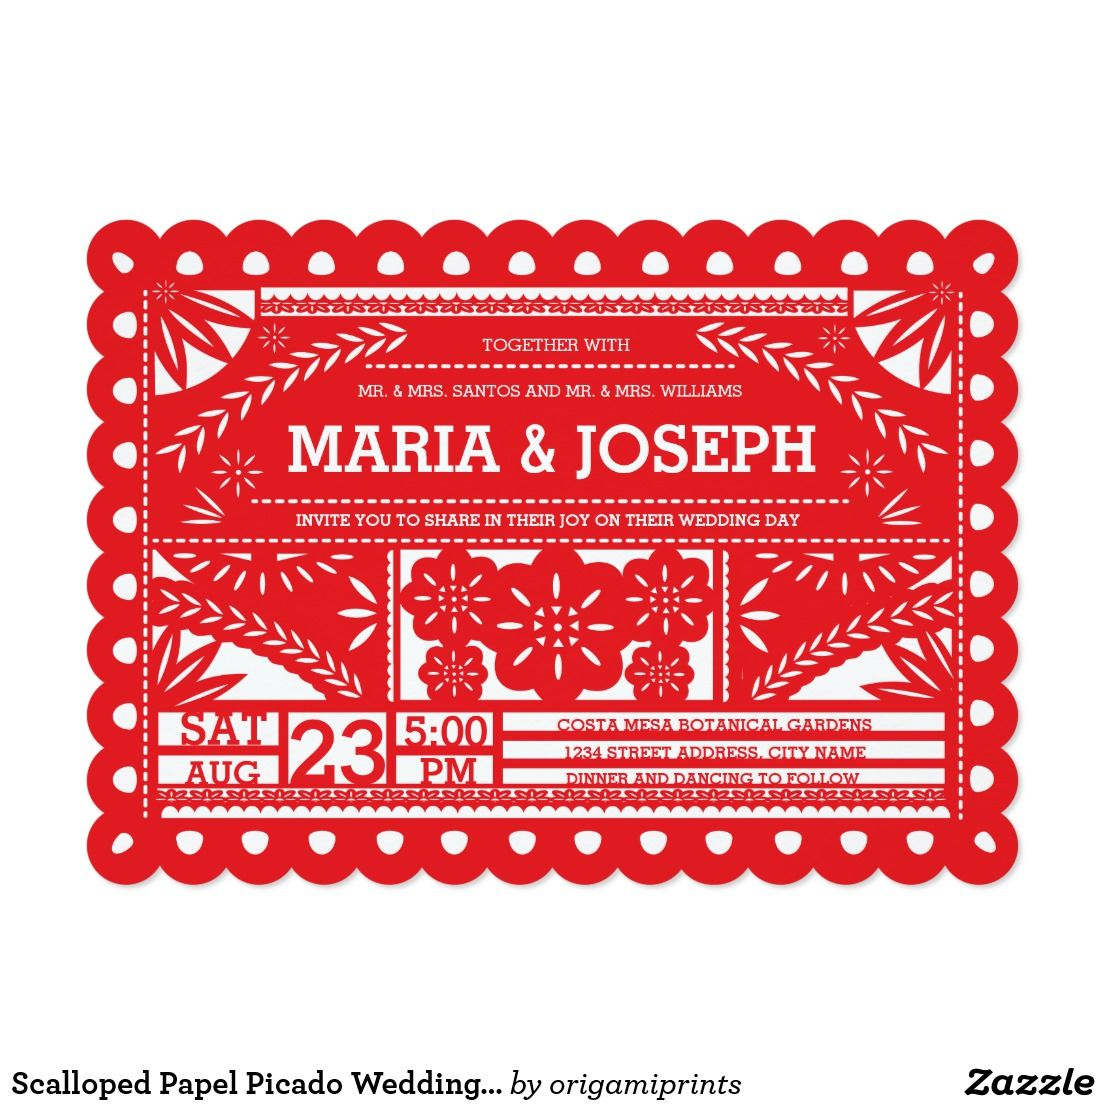 Scalloped Papel Picado Wedding Invite - Red | Pinterest | Papel ...